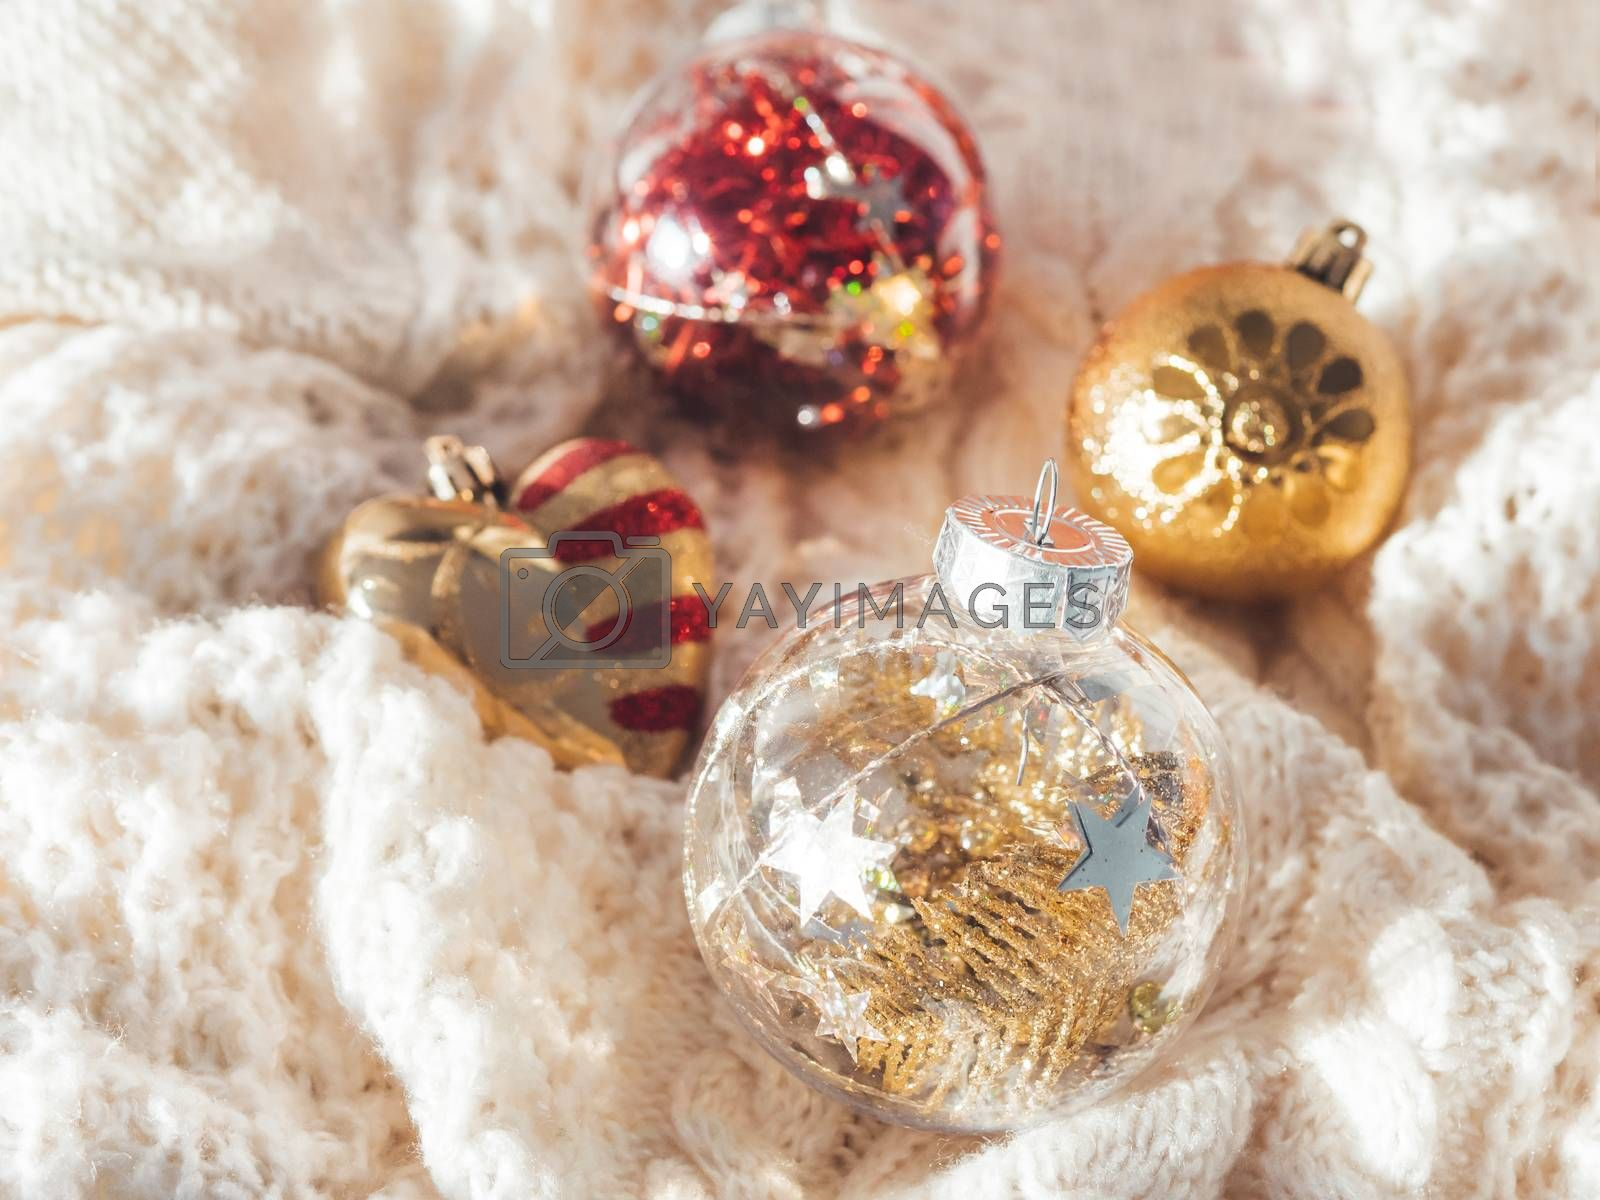 Decorative balls for Christmas tree on cable-knit sweater. Transparent sphere with red, golden spangles inside. Winter holiday spirit. New year celebration.